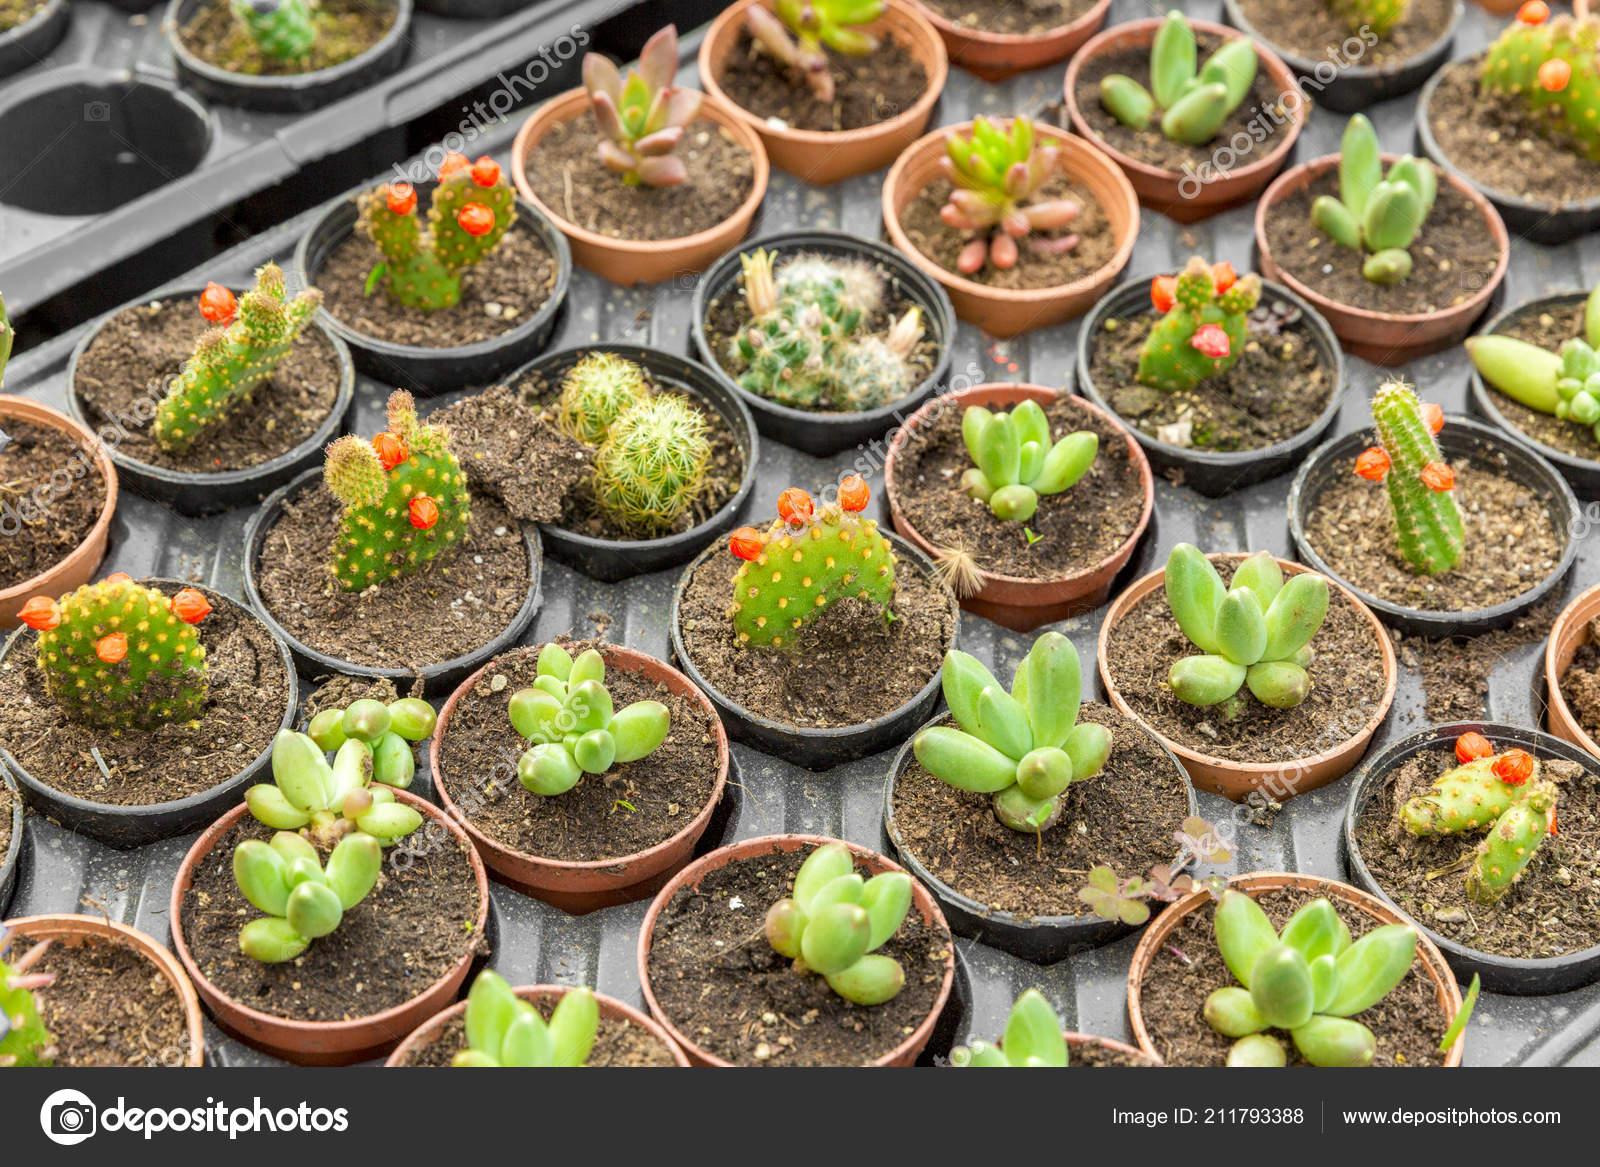 Depositphotos & Cacti Different Types Succulents Flower Pots \u2014 Stock Photo ...